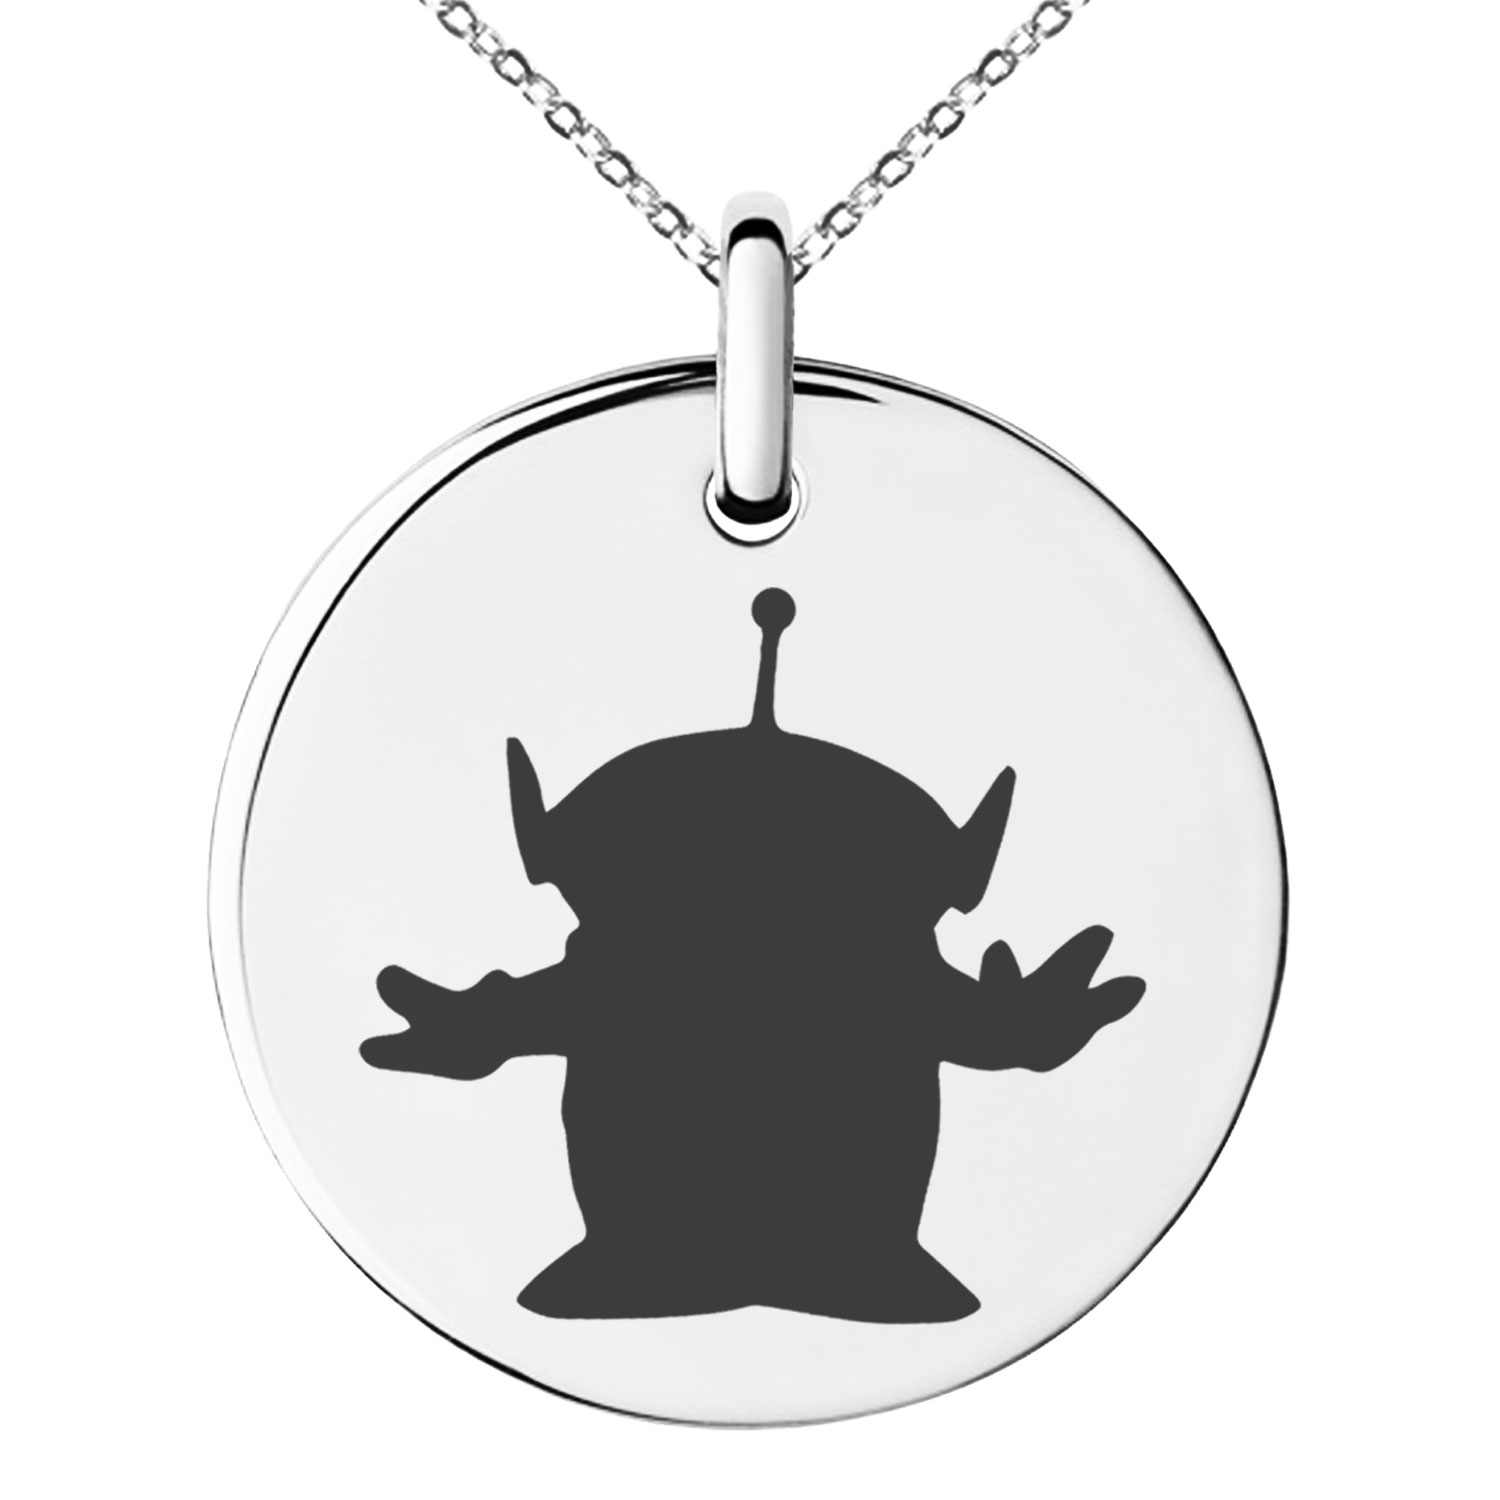 Stainless Steel Disney Toy Story Alien Engraved Small Medallion Circle Charm Pendant Necklace